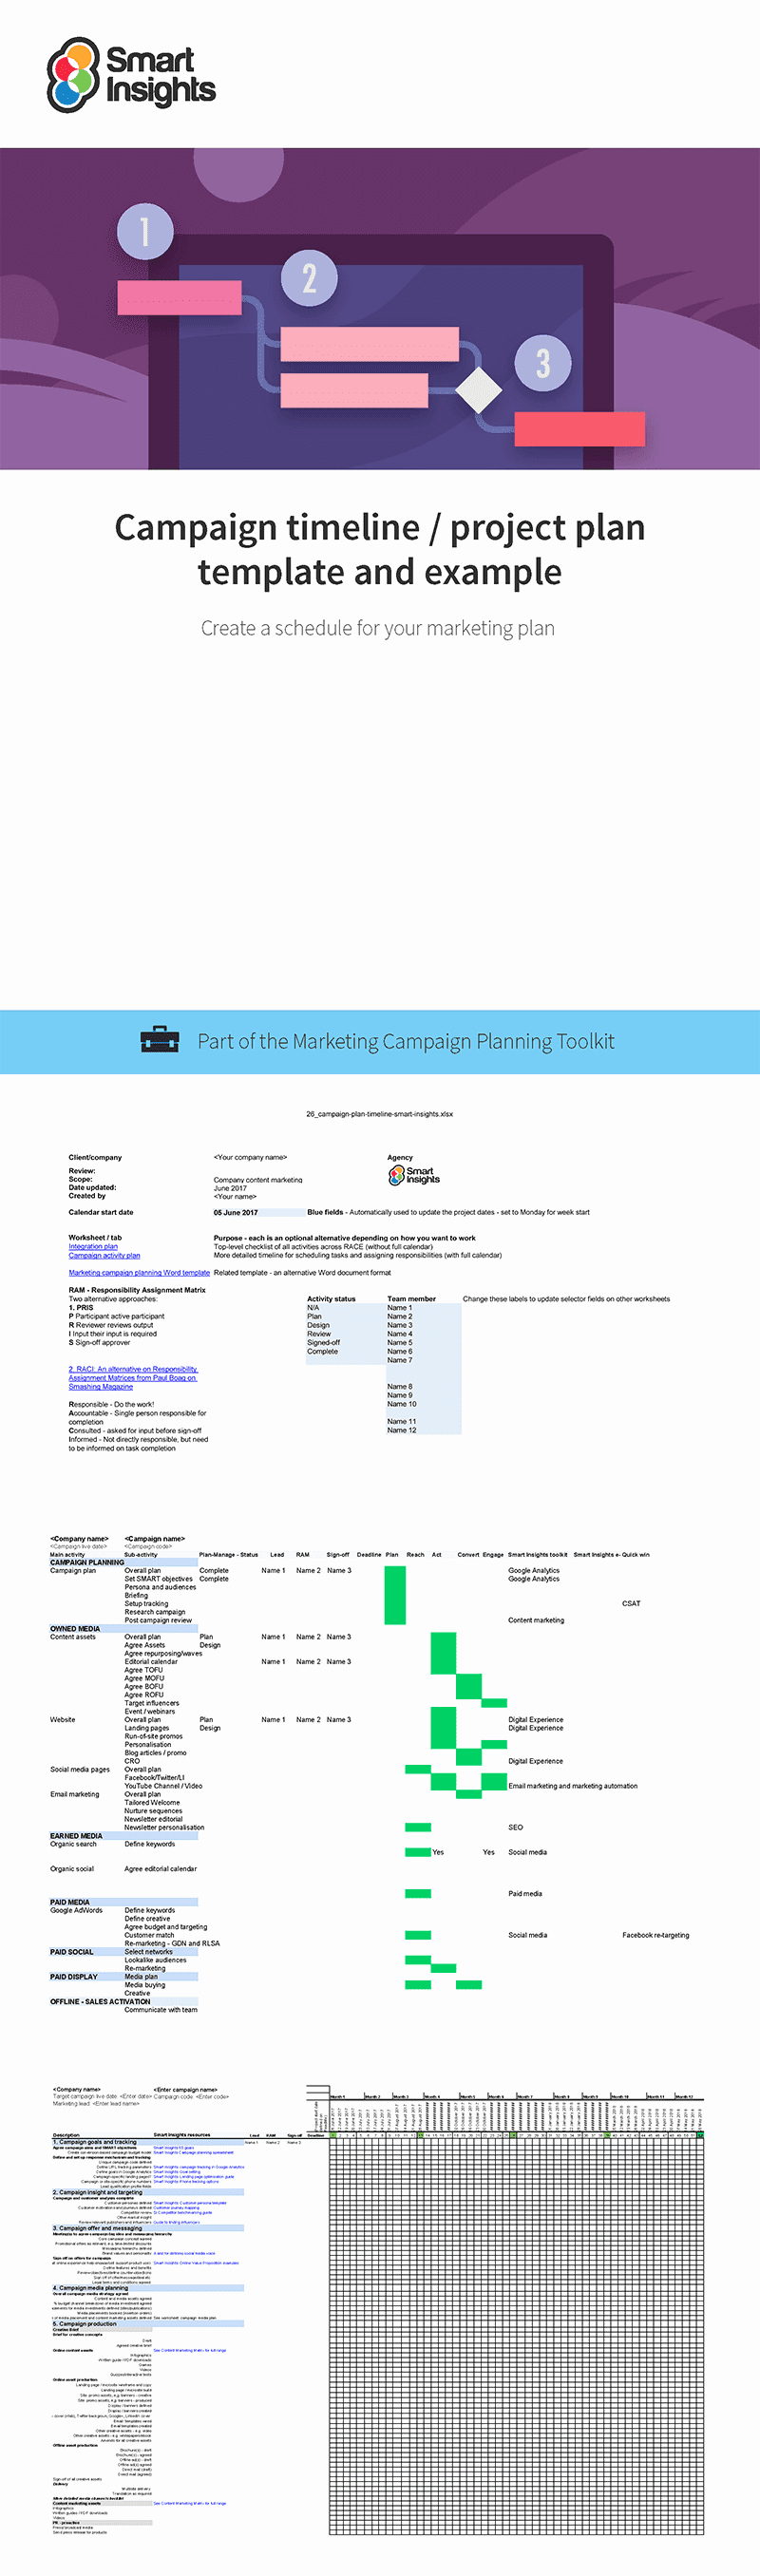 Marketing Campaign Timeline Template Inspirational Campaign Timeline Project Plan Template and Example